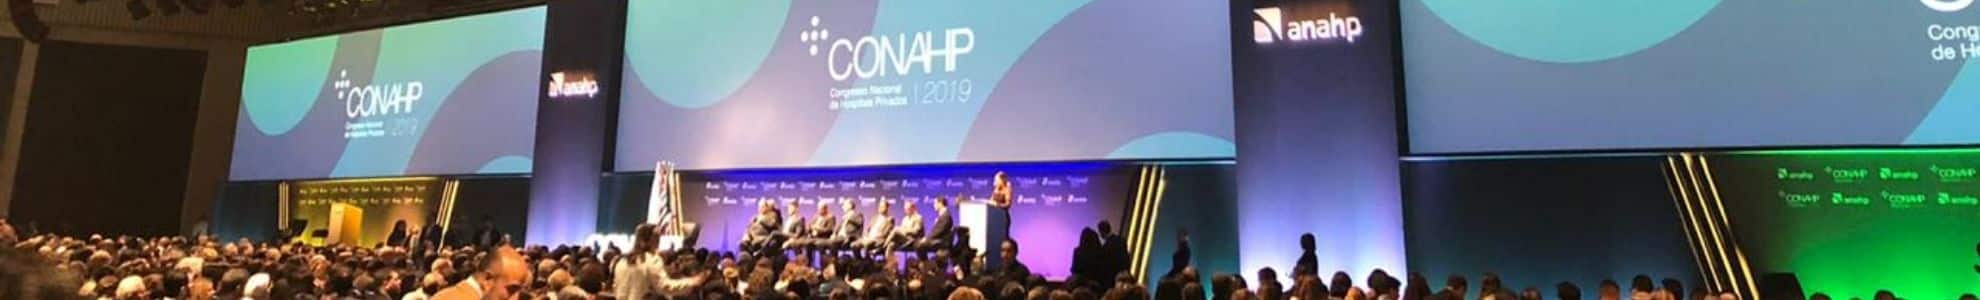 SISQUAL participates in the main event of the Private Hospital sector in Brazil